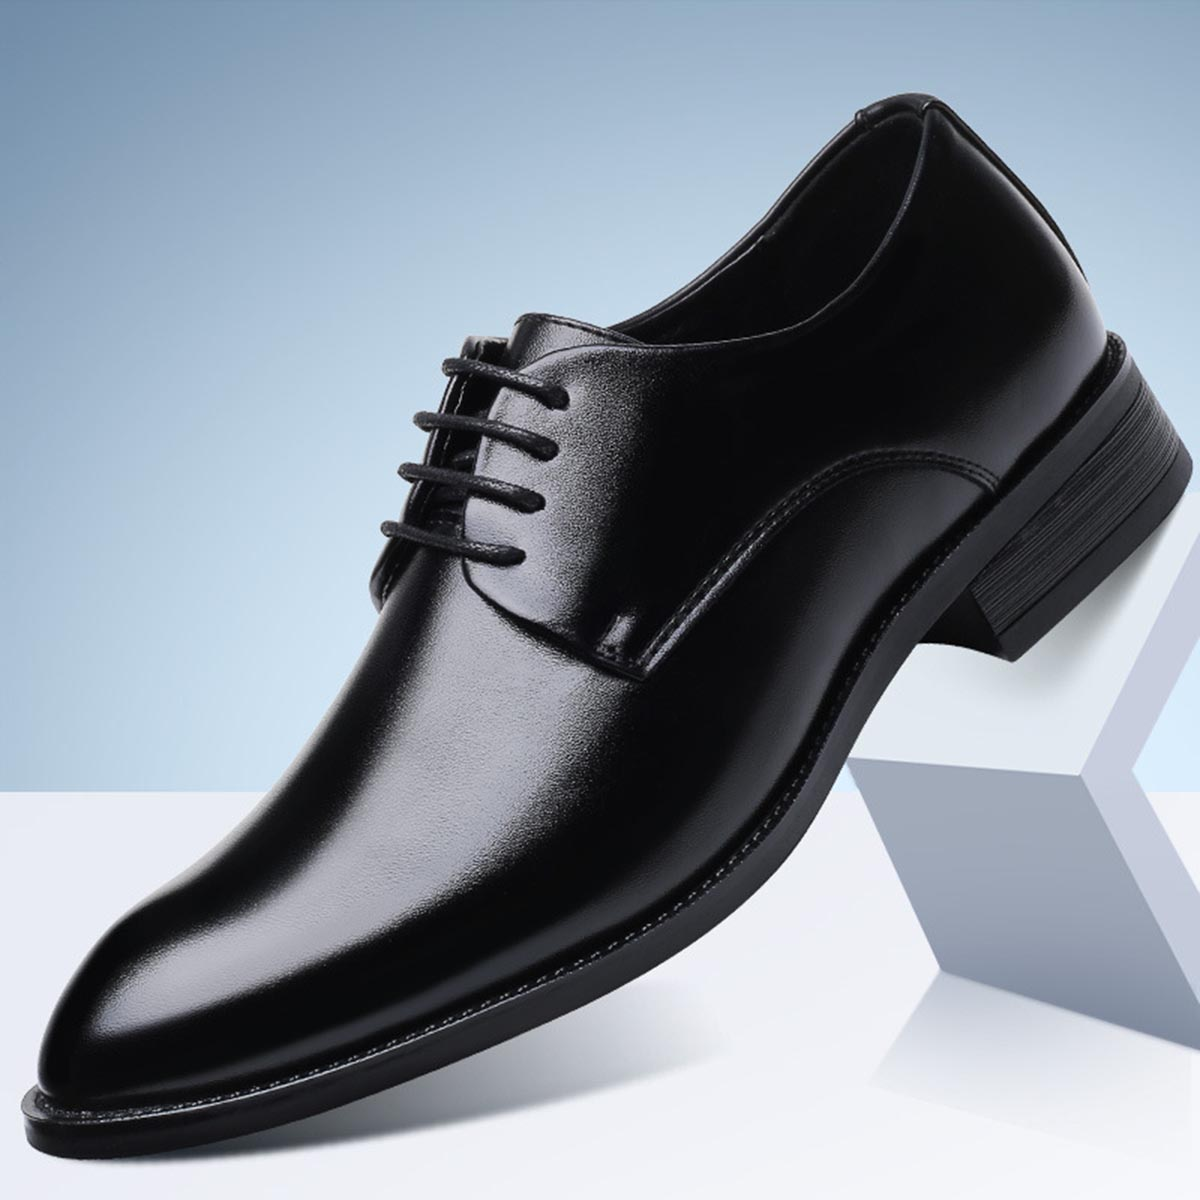 PU Leather with Business Shoes